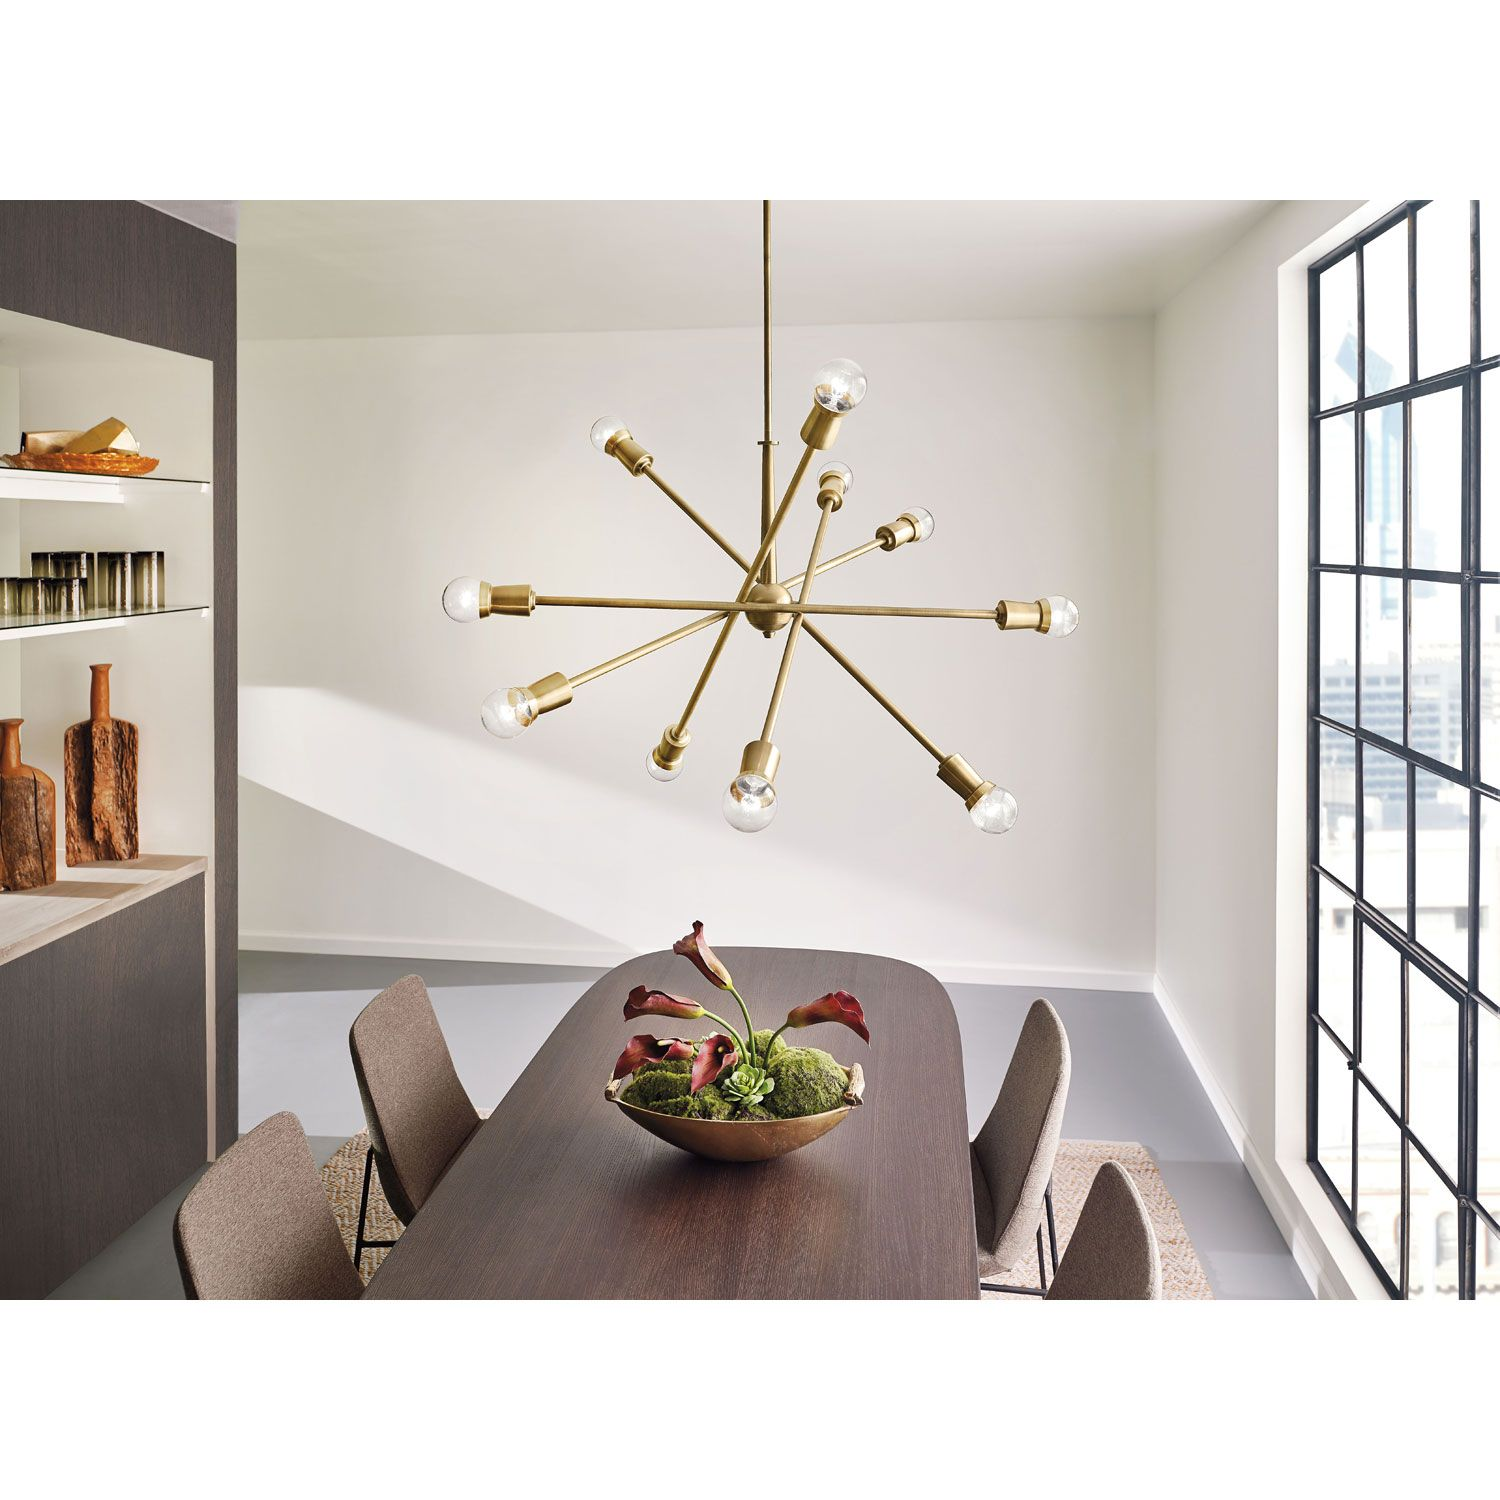 Kichler Dining Room Lighting Endearing Kichler Armstrong Natural Brass Tenlight Starburst Pendant Design Ideas